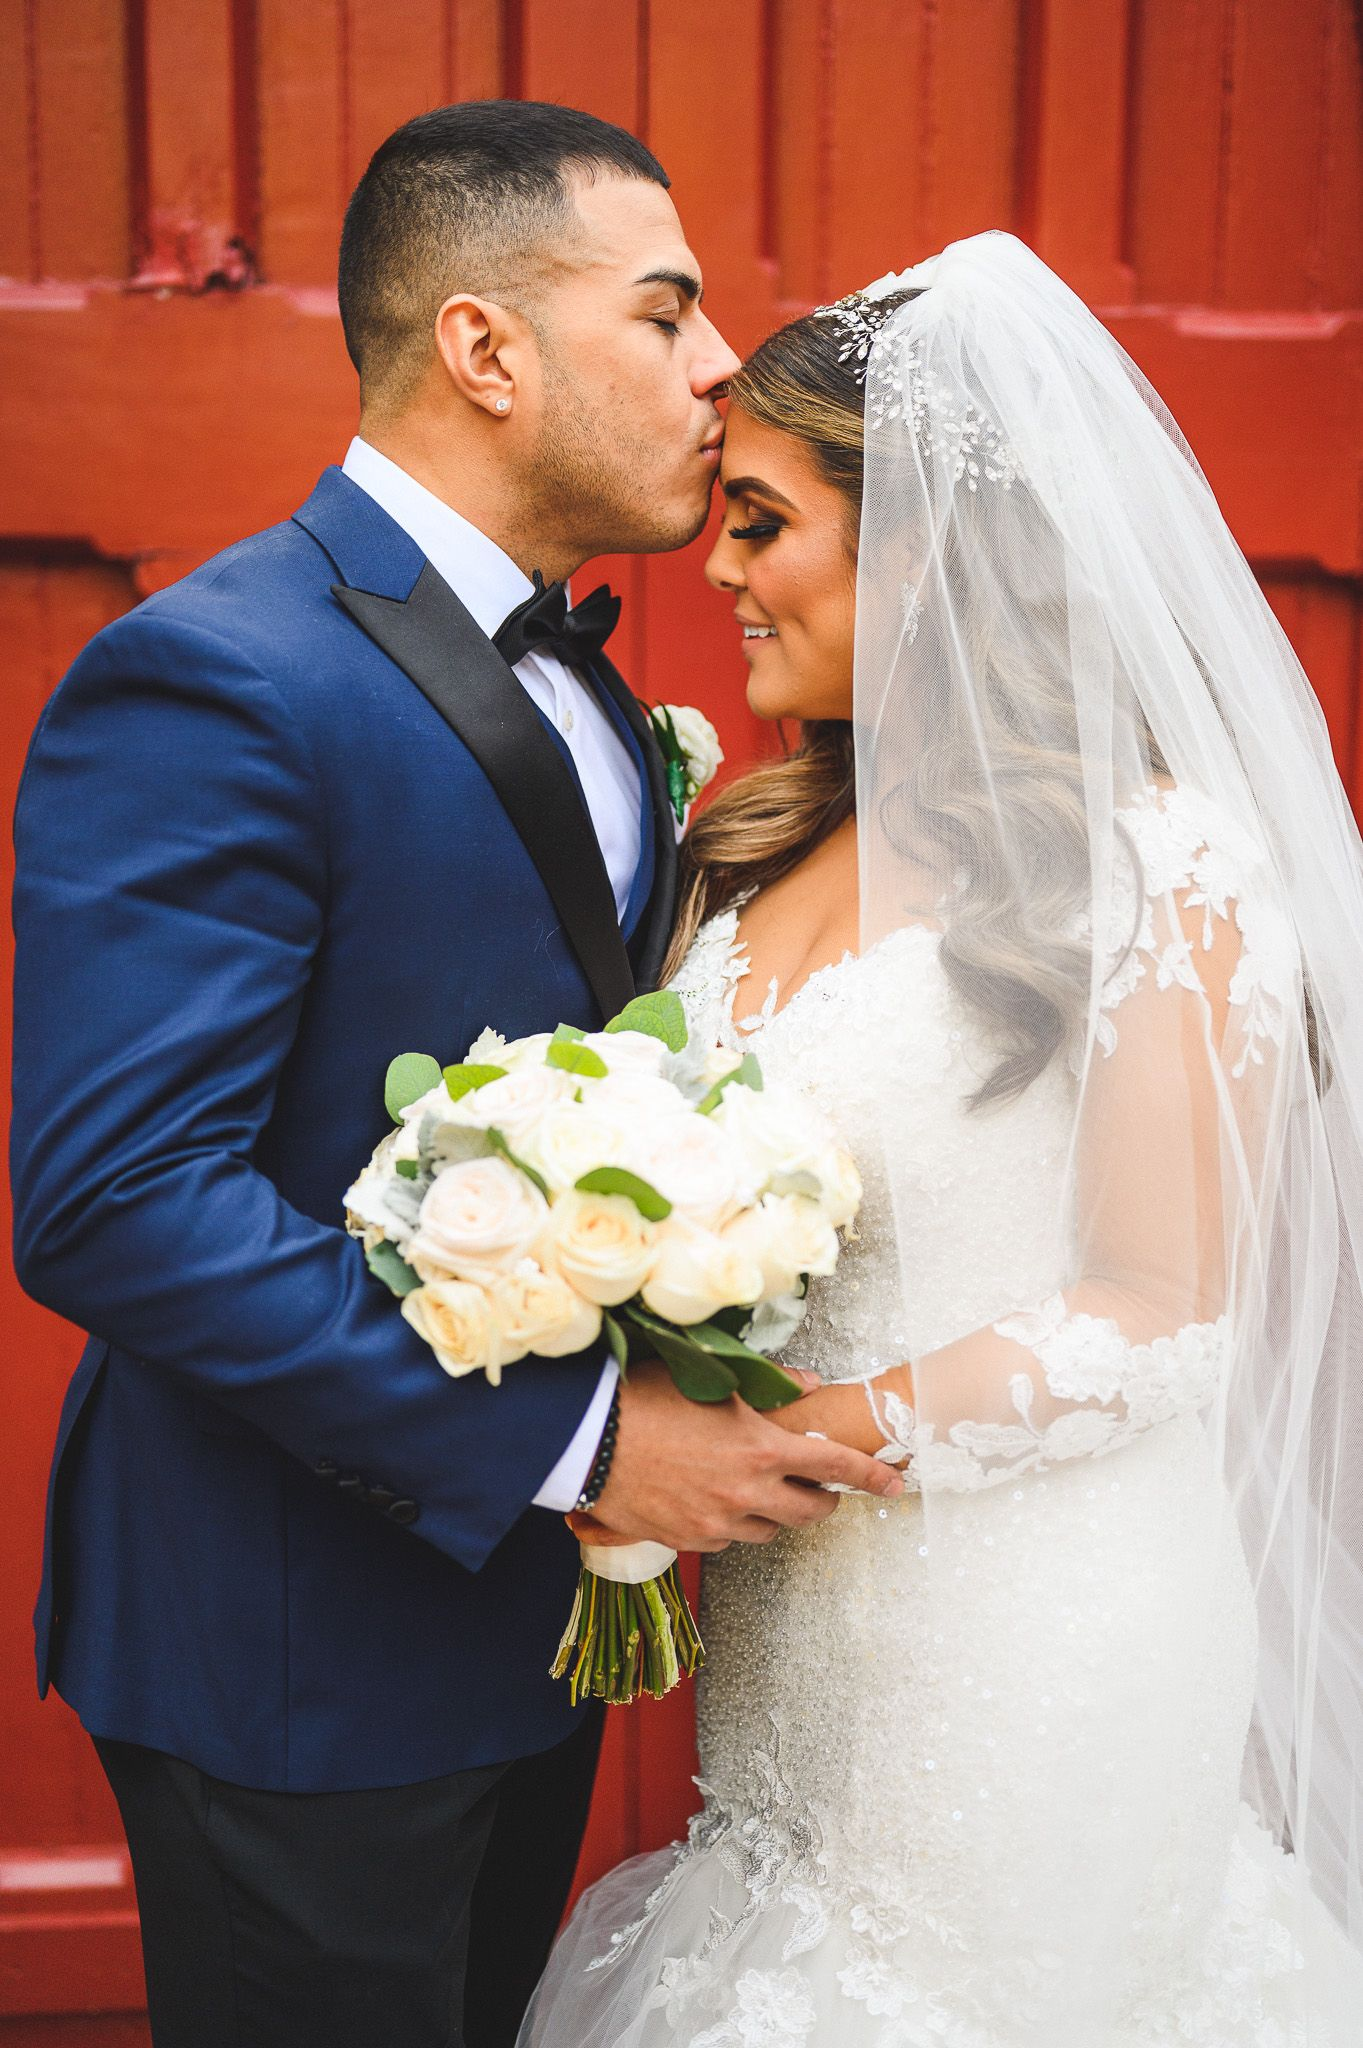 groom kissing his bride forehead in front of red doors at stone house